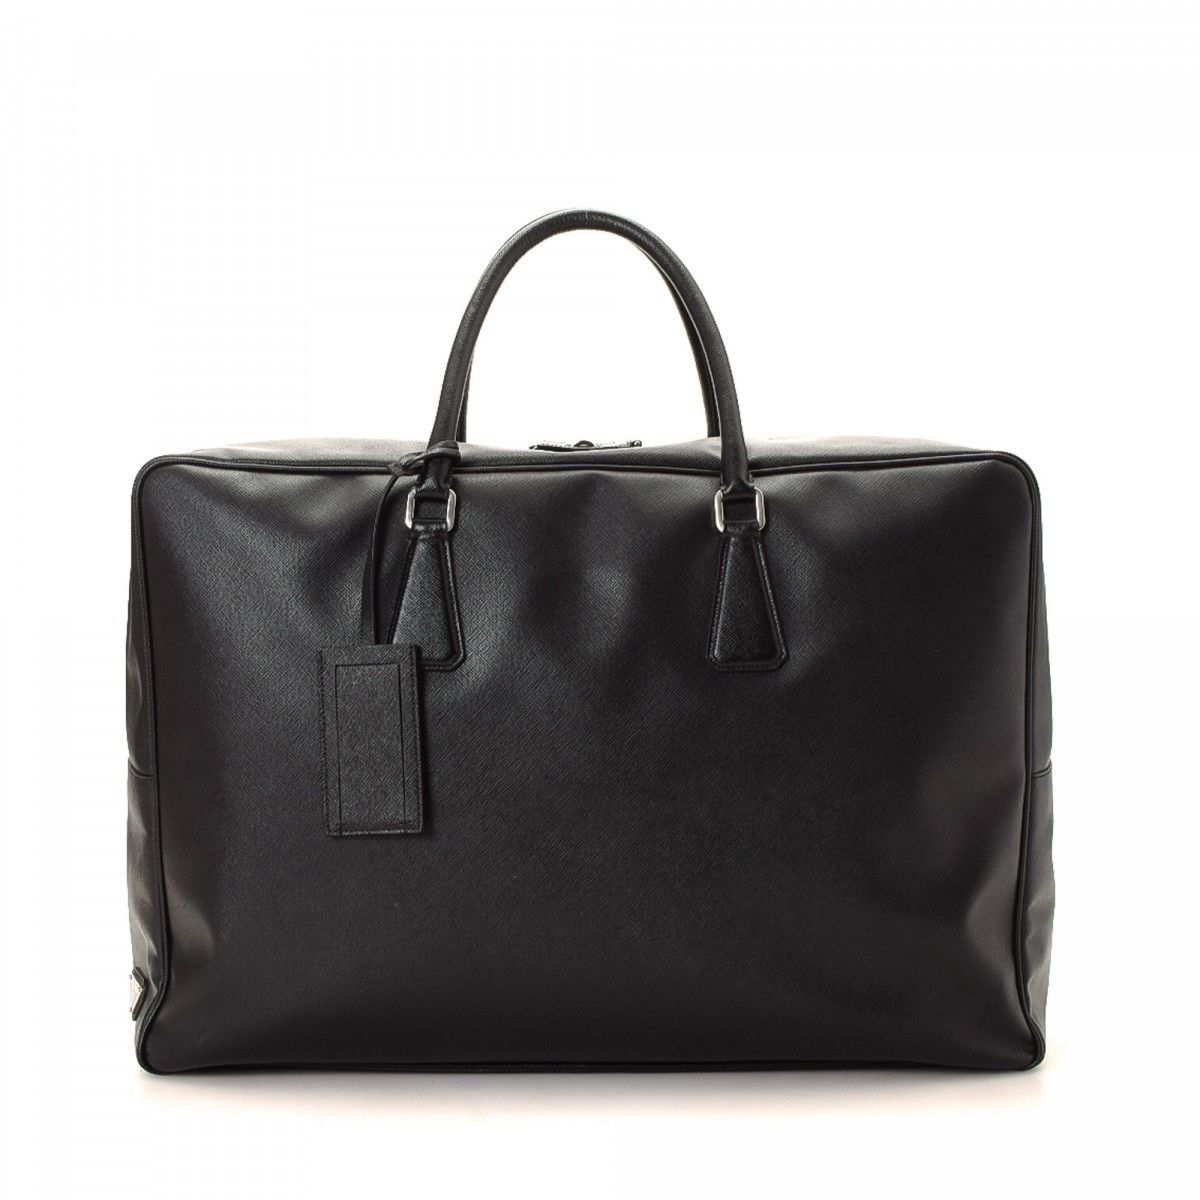 Prada Pre-owned - Leather travel bag G05lcbBso